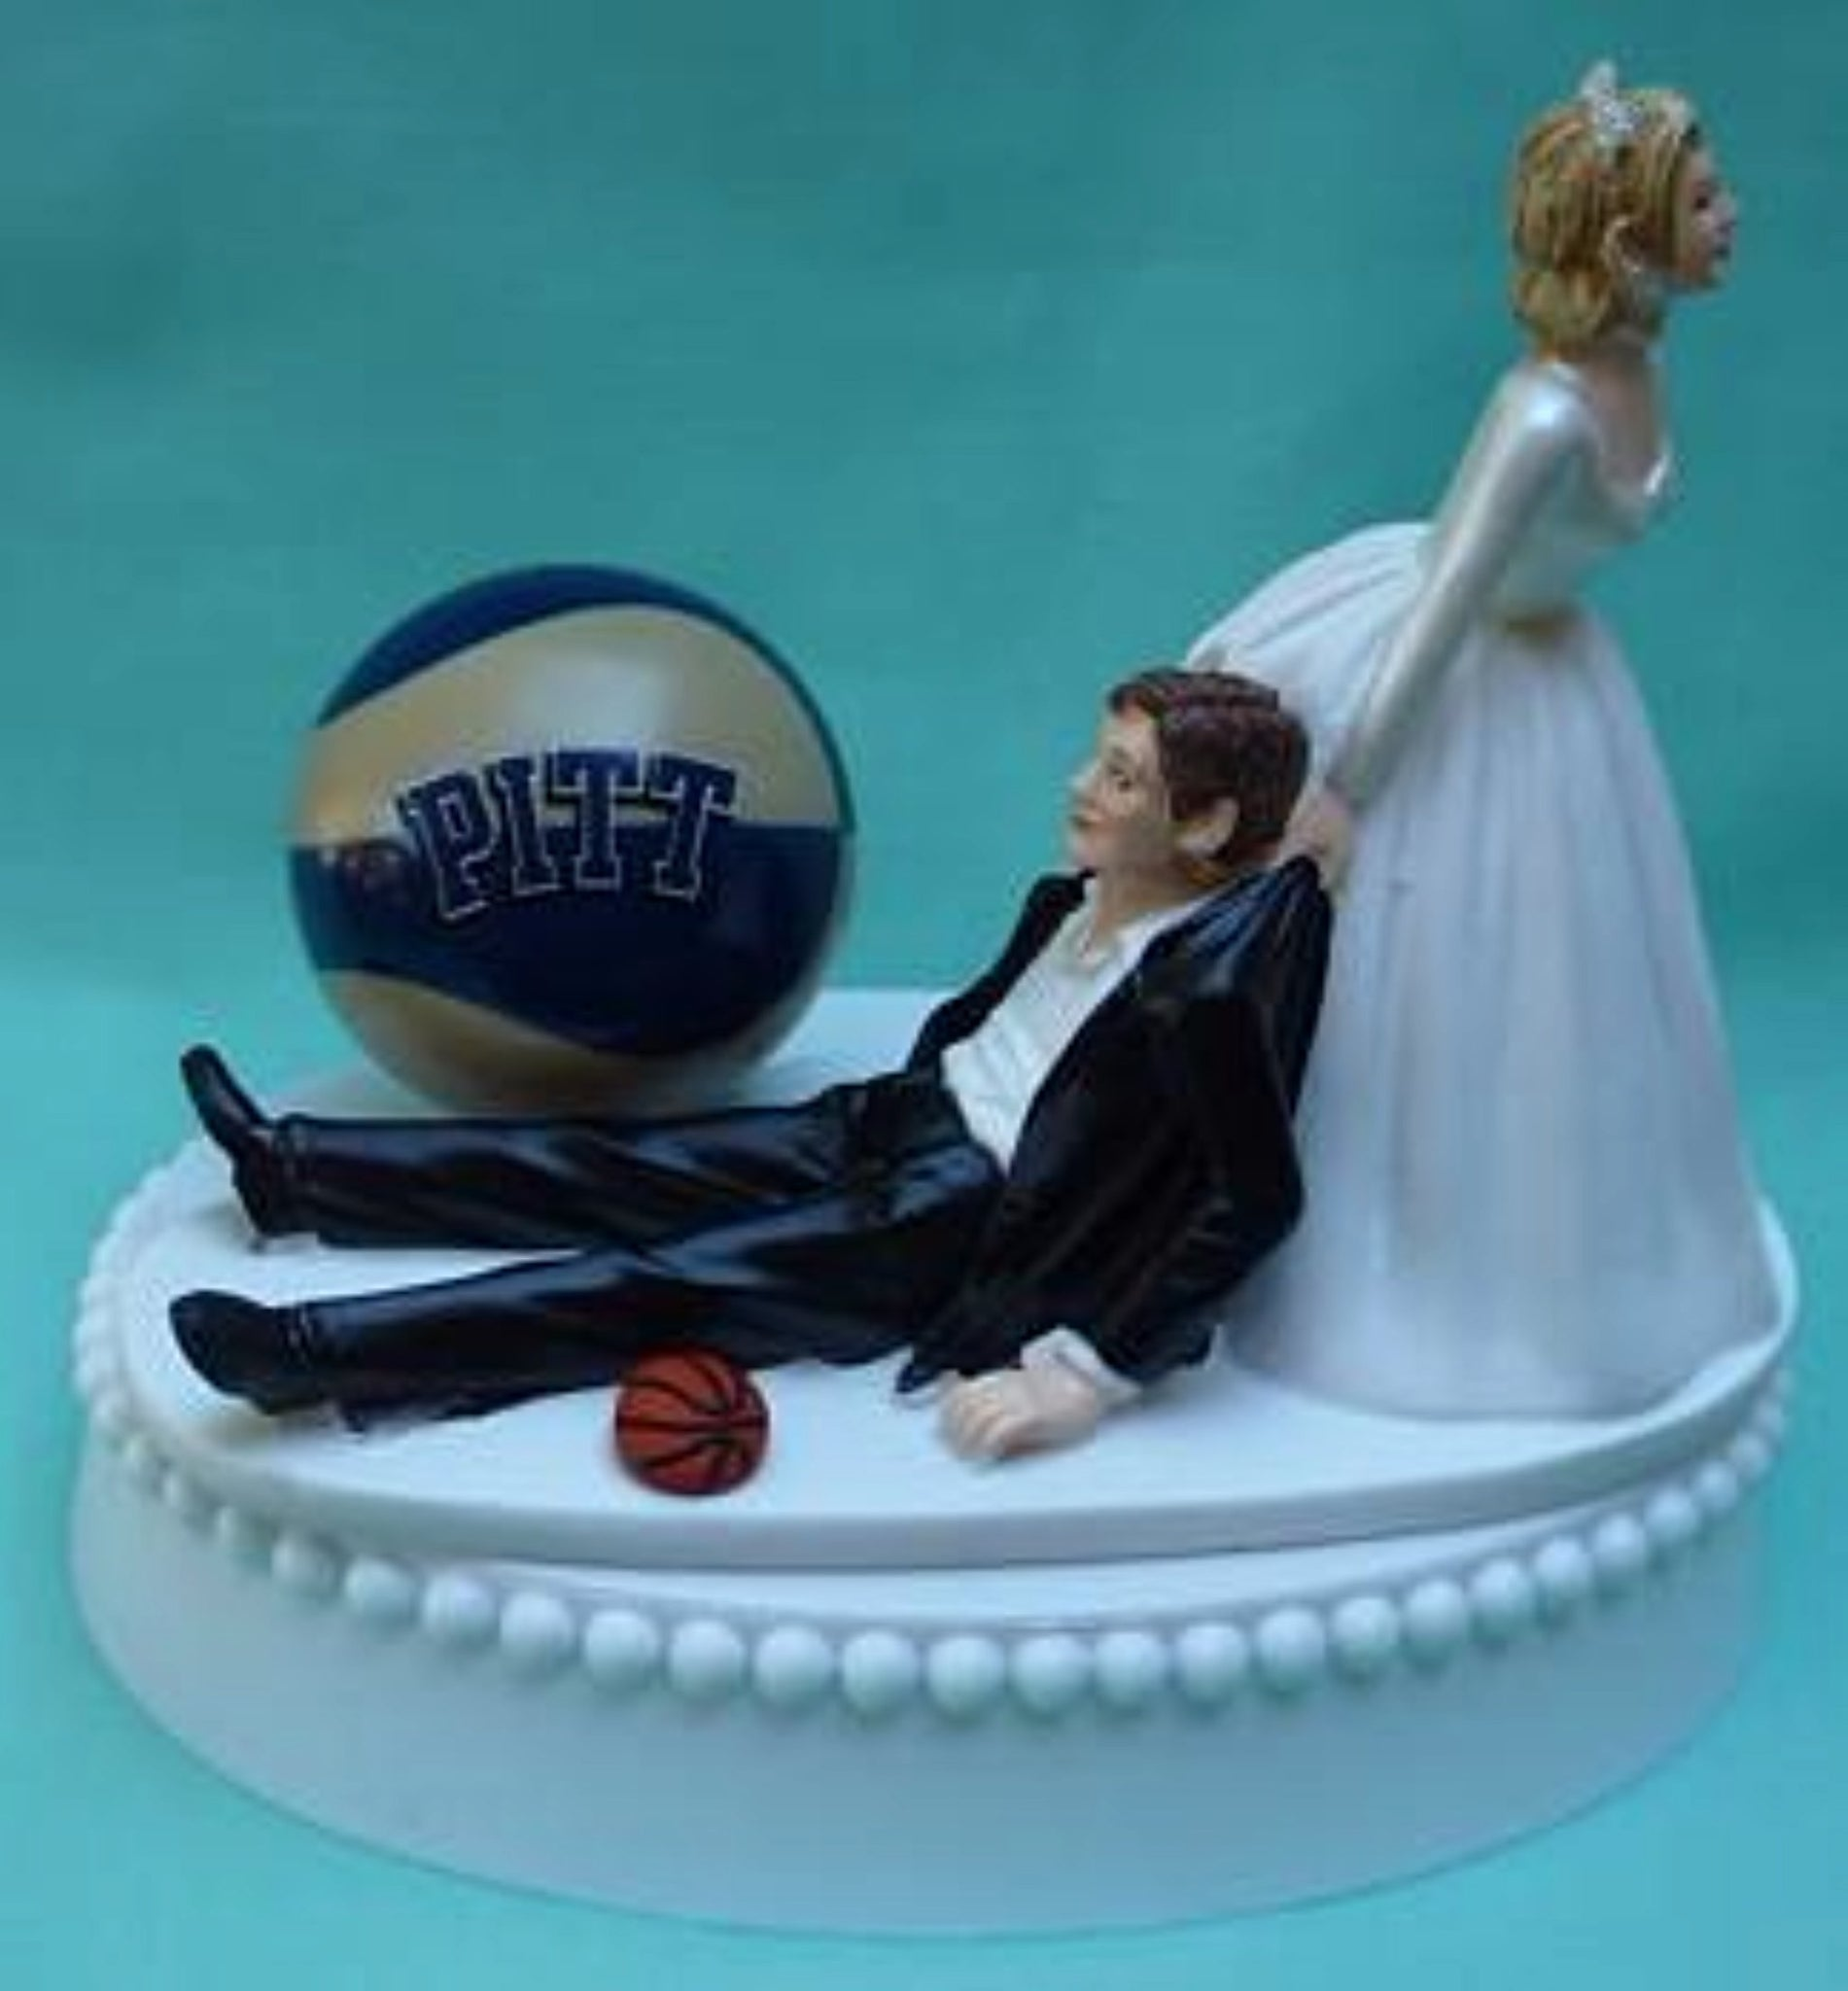 Pitt Panthers basketball wedding cake topper University of Pittsburgh funny humorous Fun Wedding Things bride groom